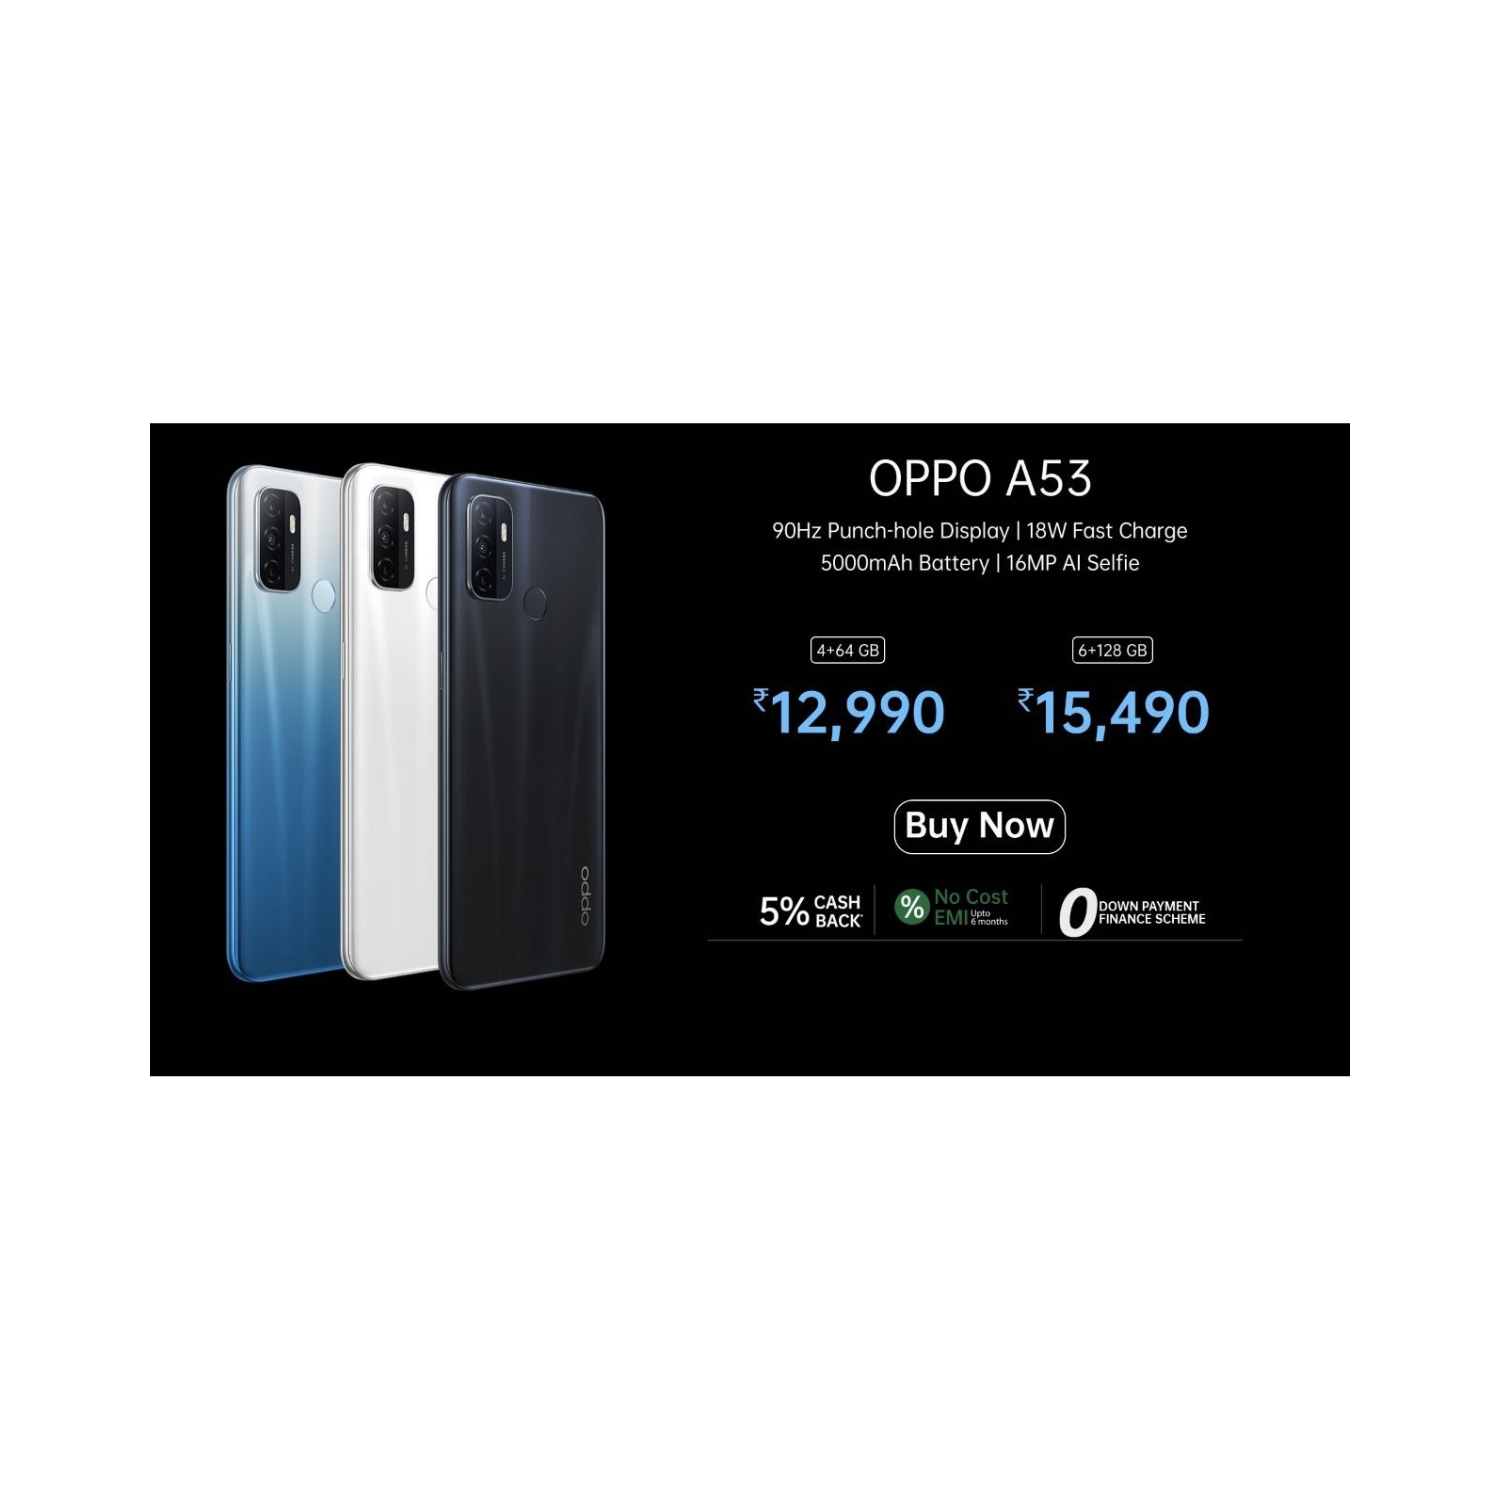 OPPO A53 Smartphone With 3-camera System Now In India